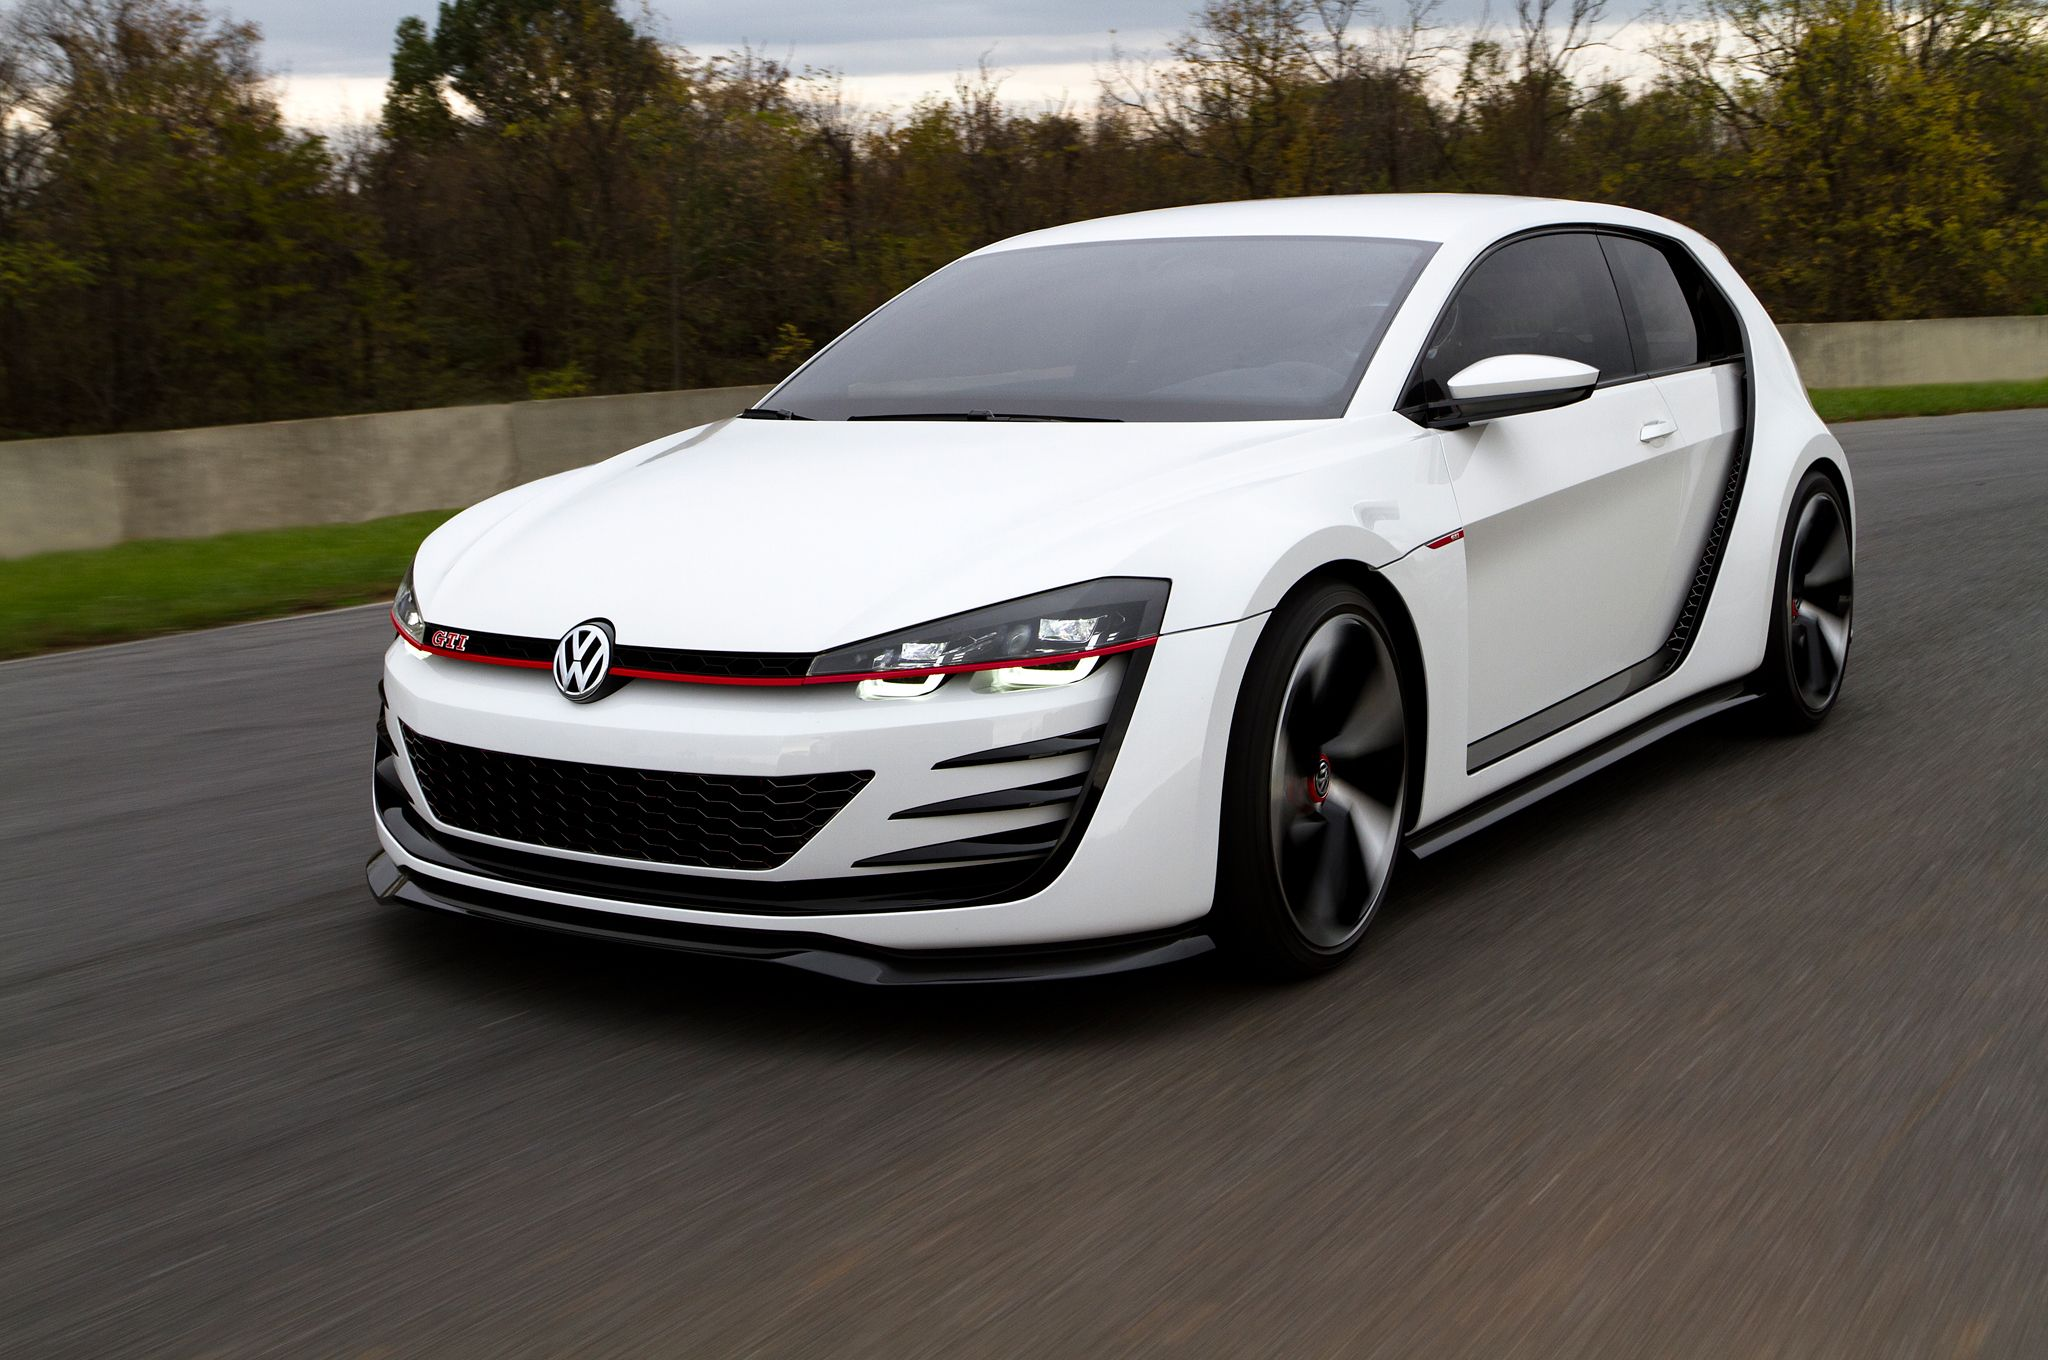 This is what you get when you combine a vw gti with an audi r8 volkswagen cars and golf